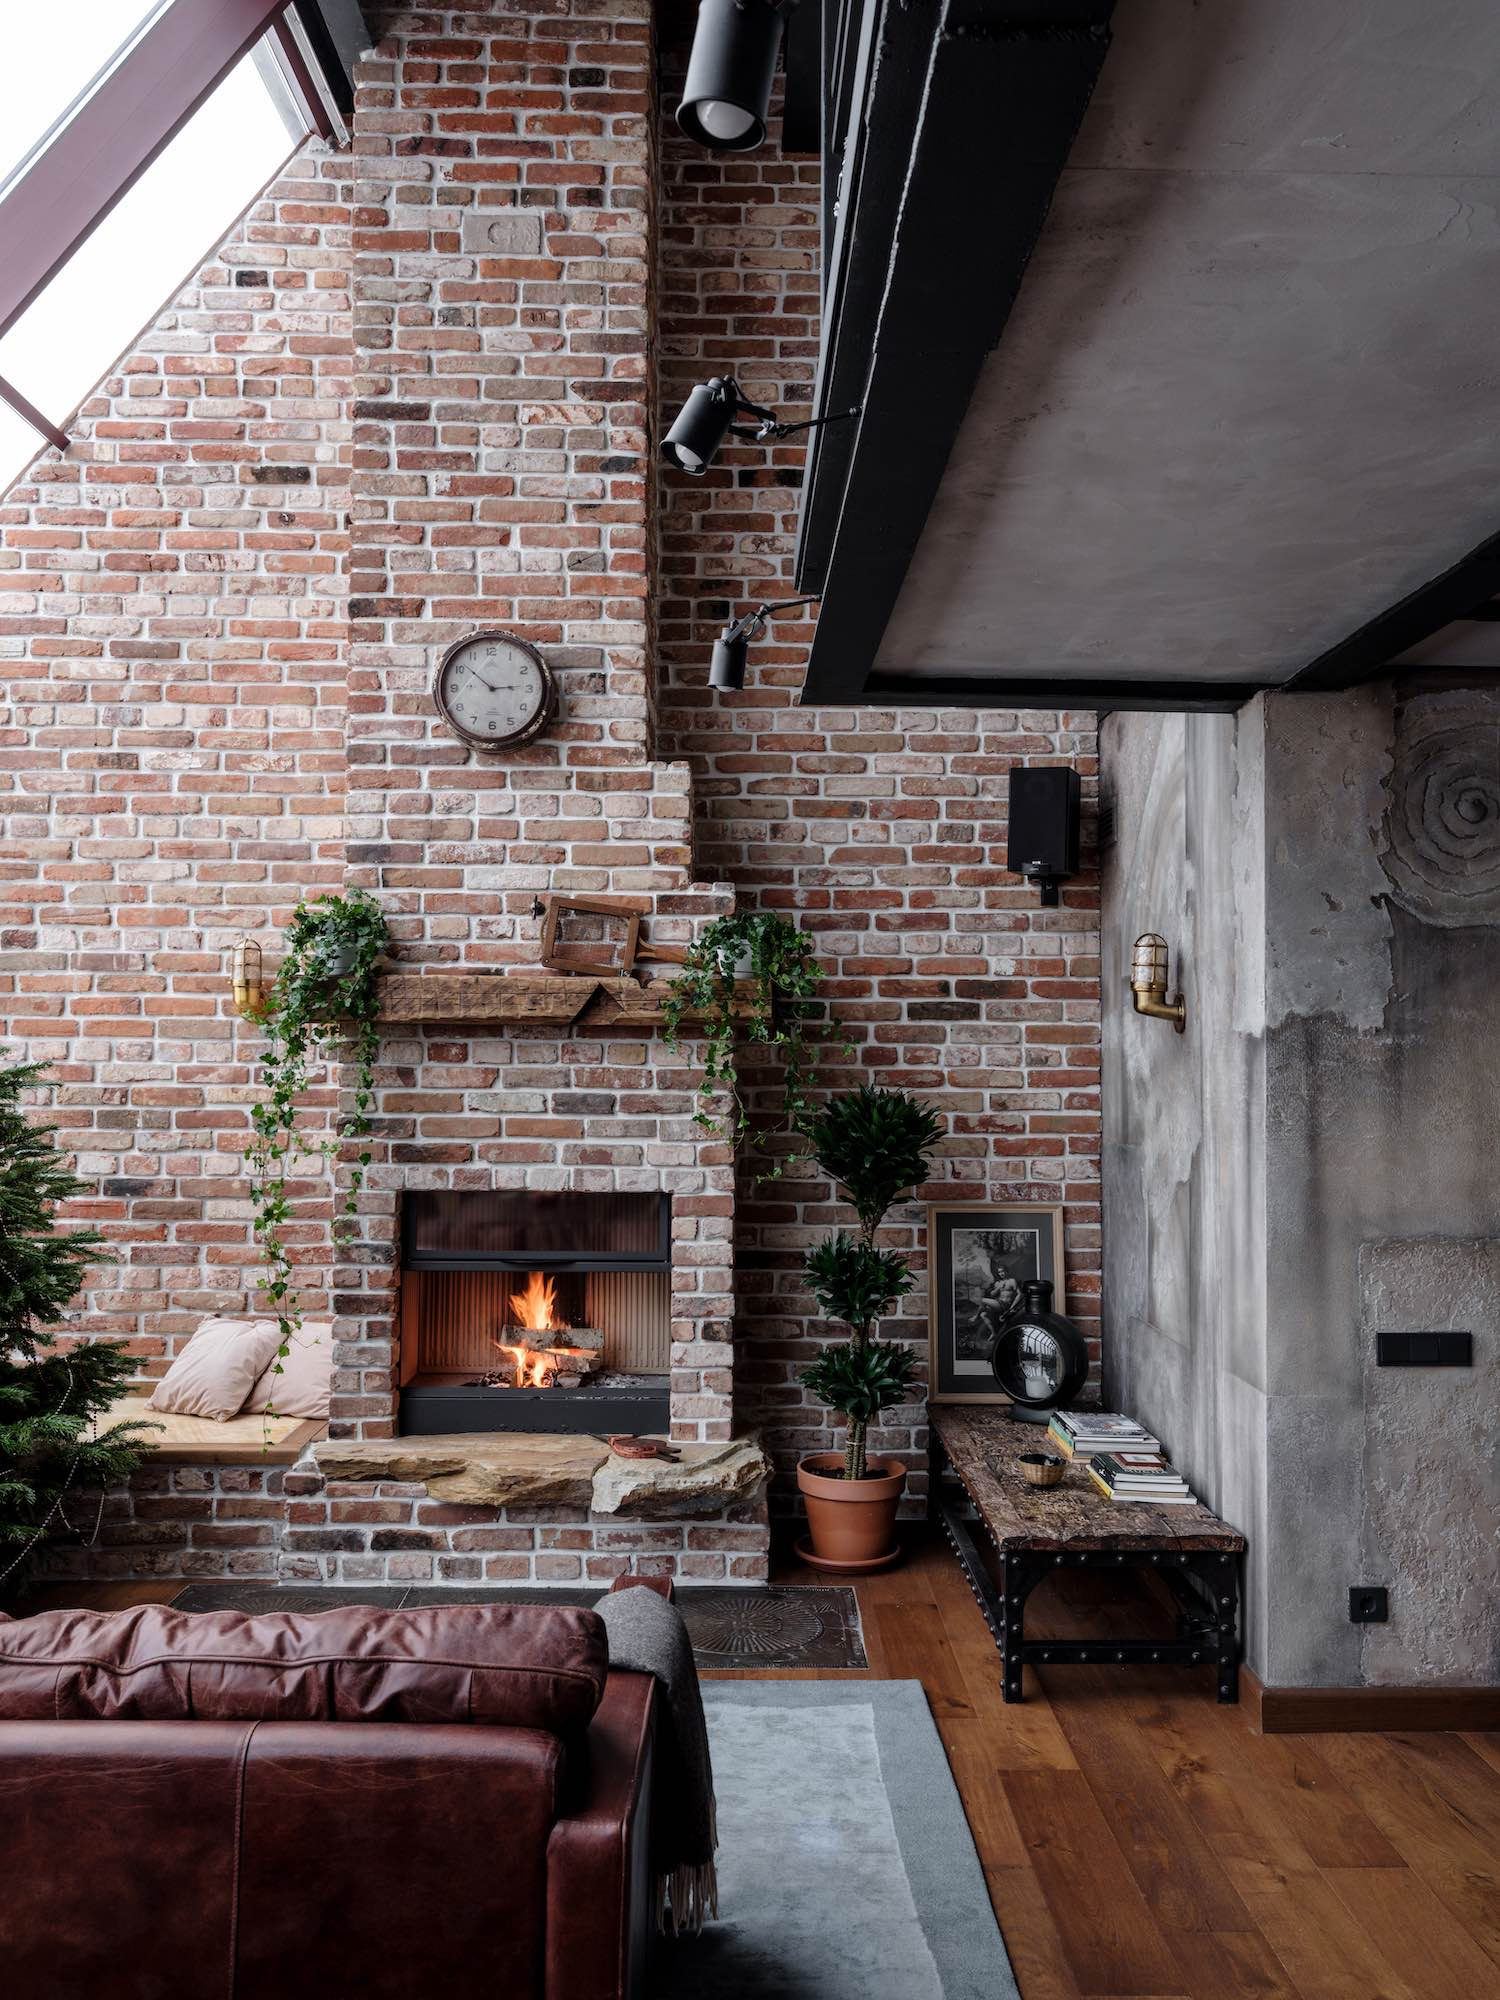 cozy fireplace in an industrial loft apartment